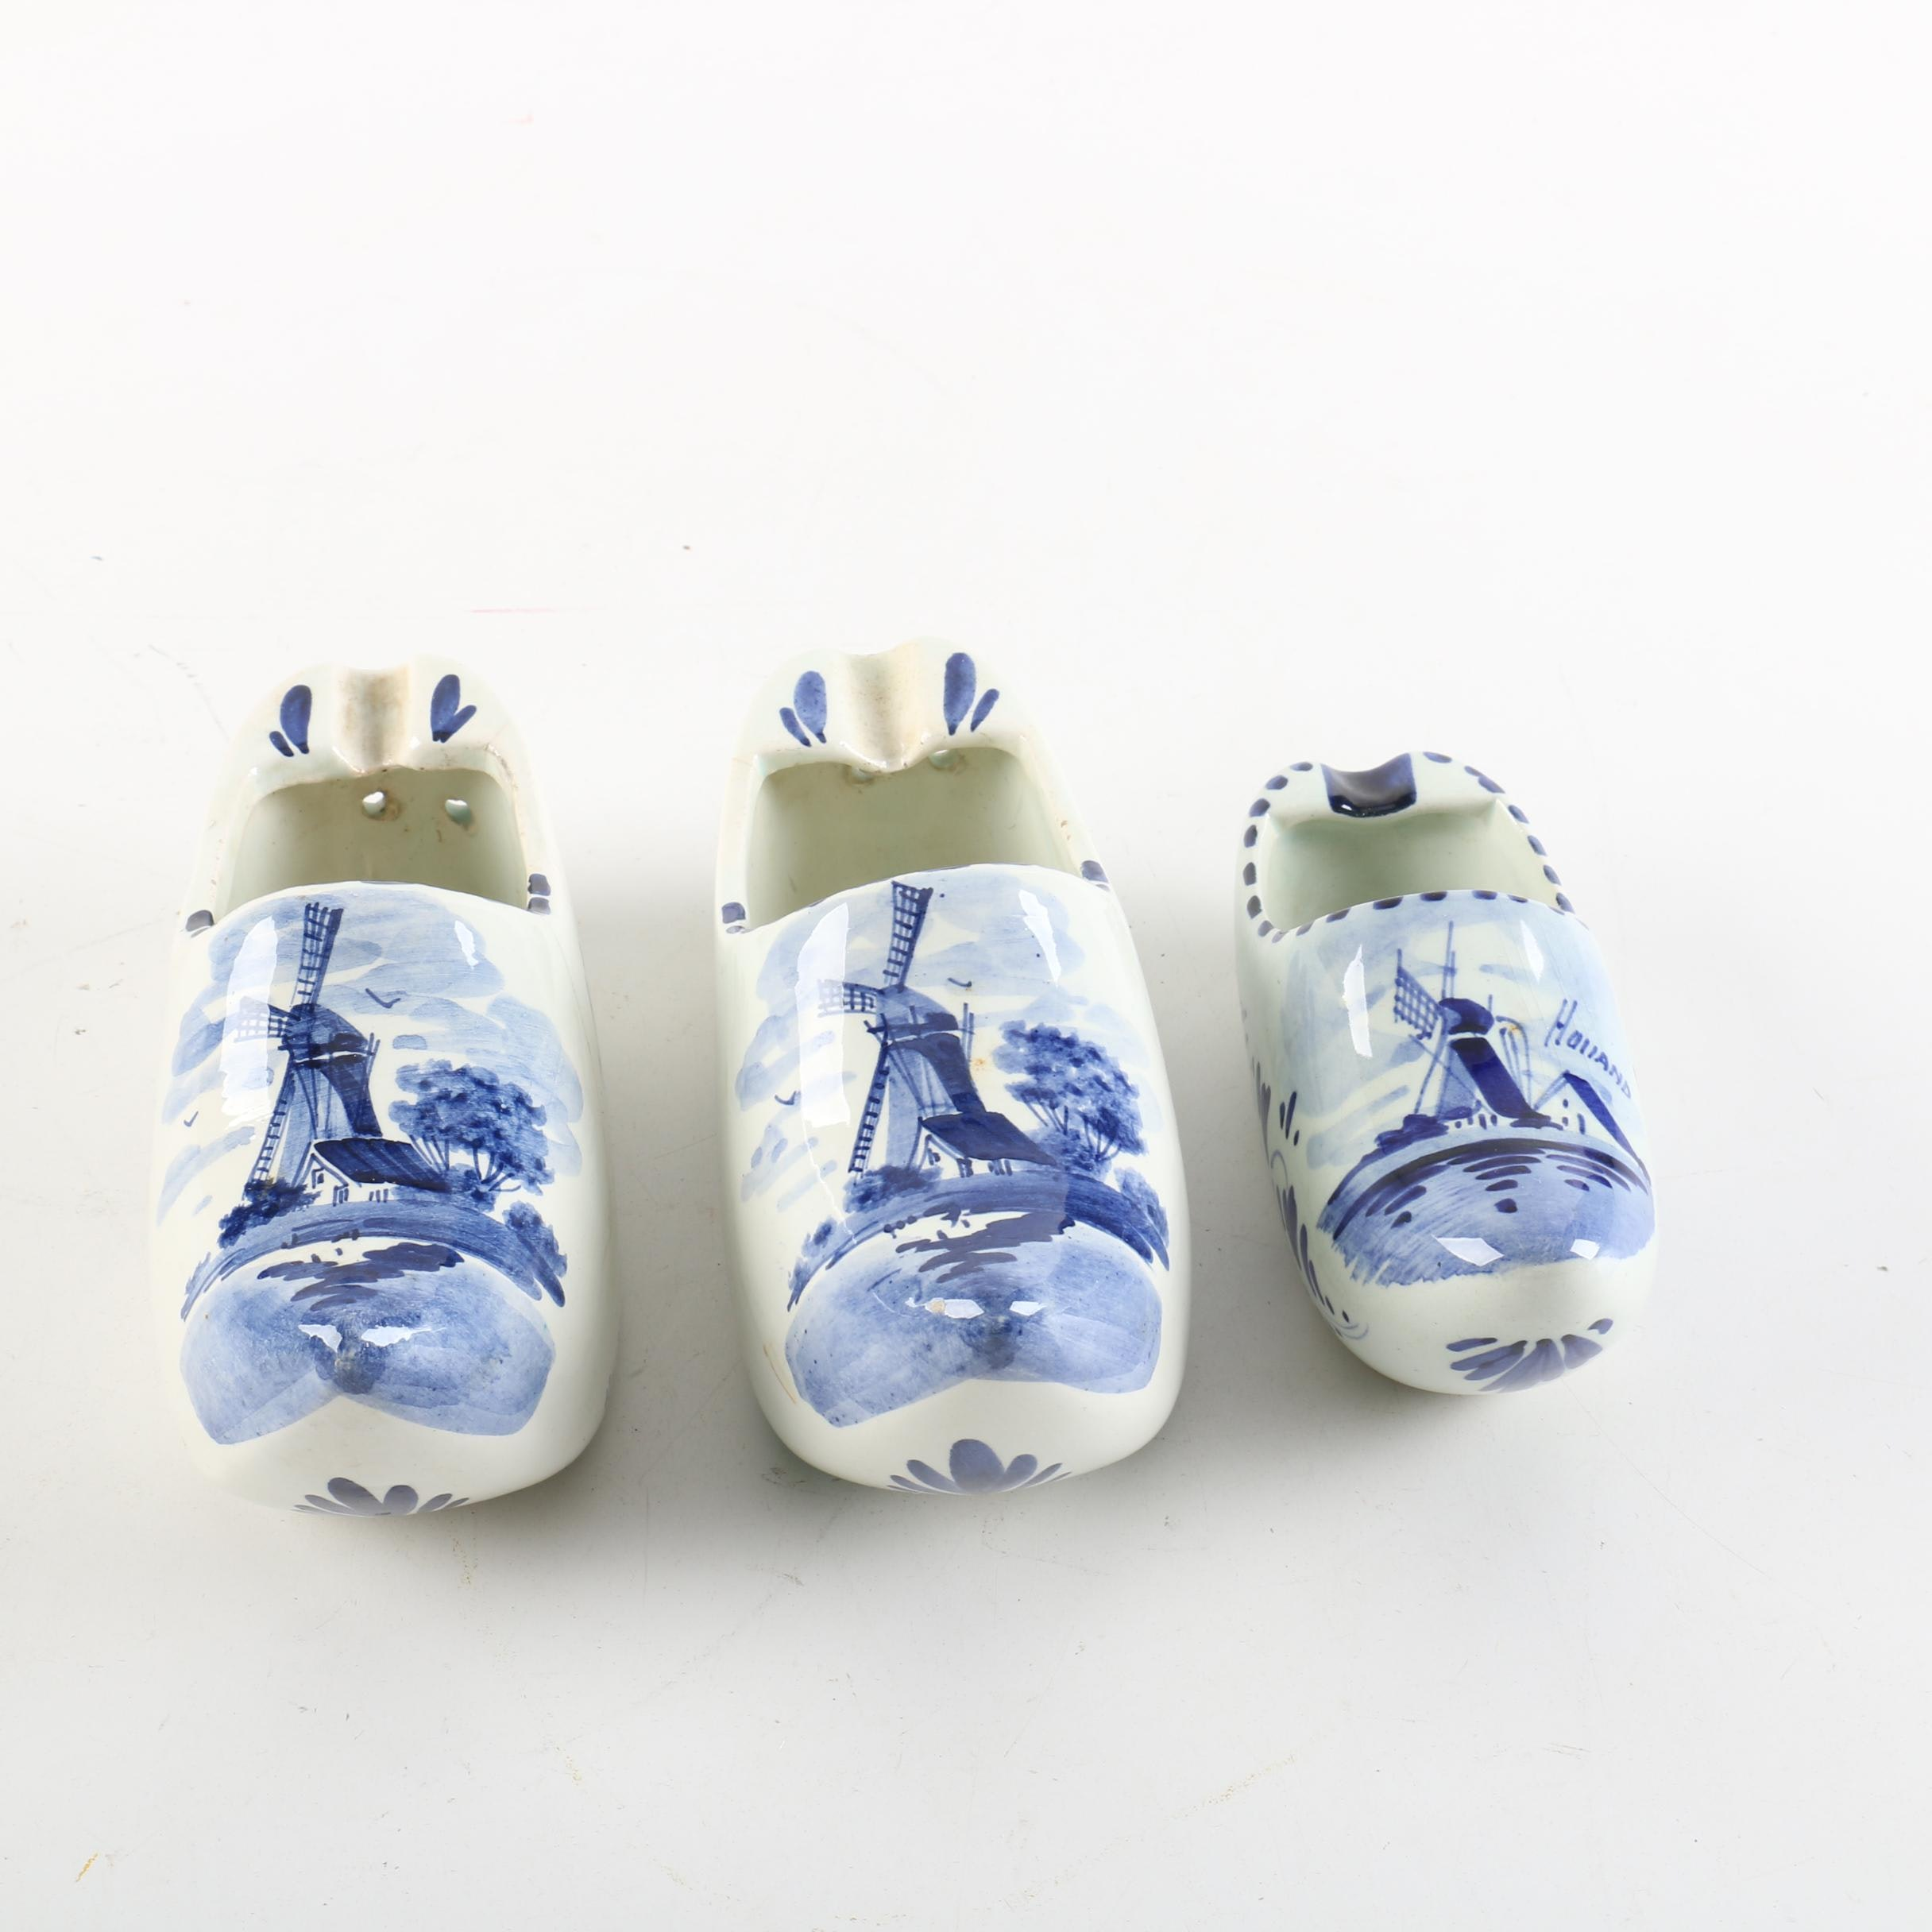 Delft Shoe Ash Receivers